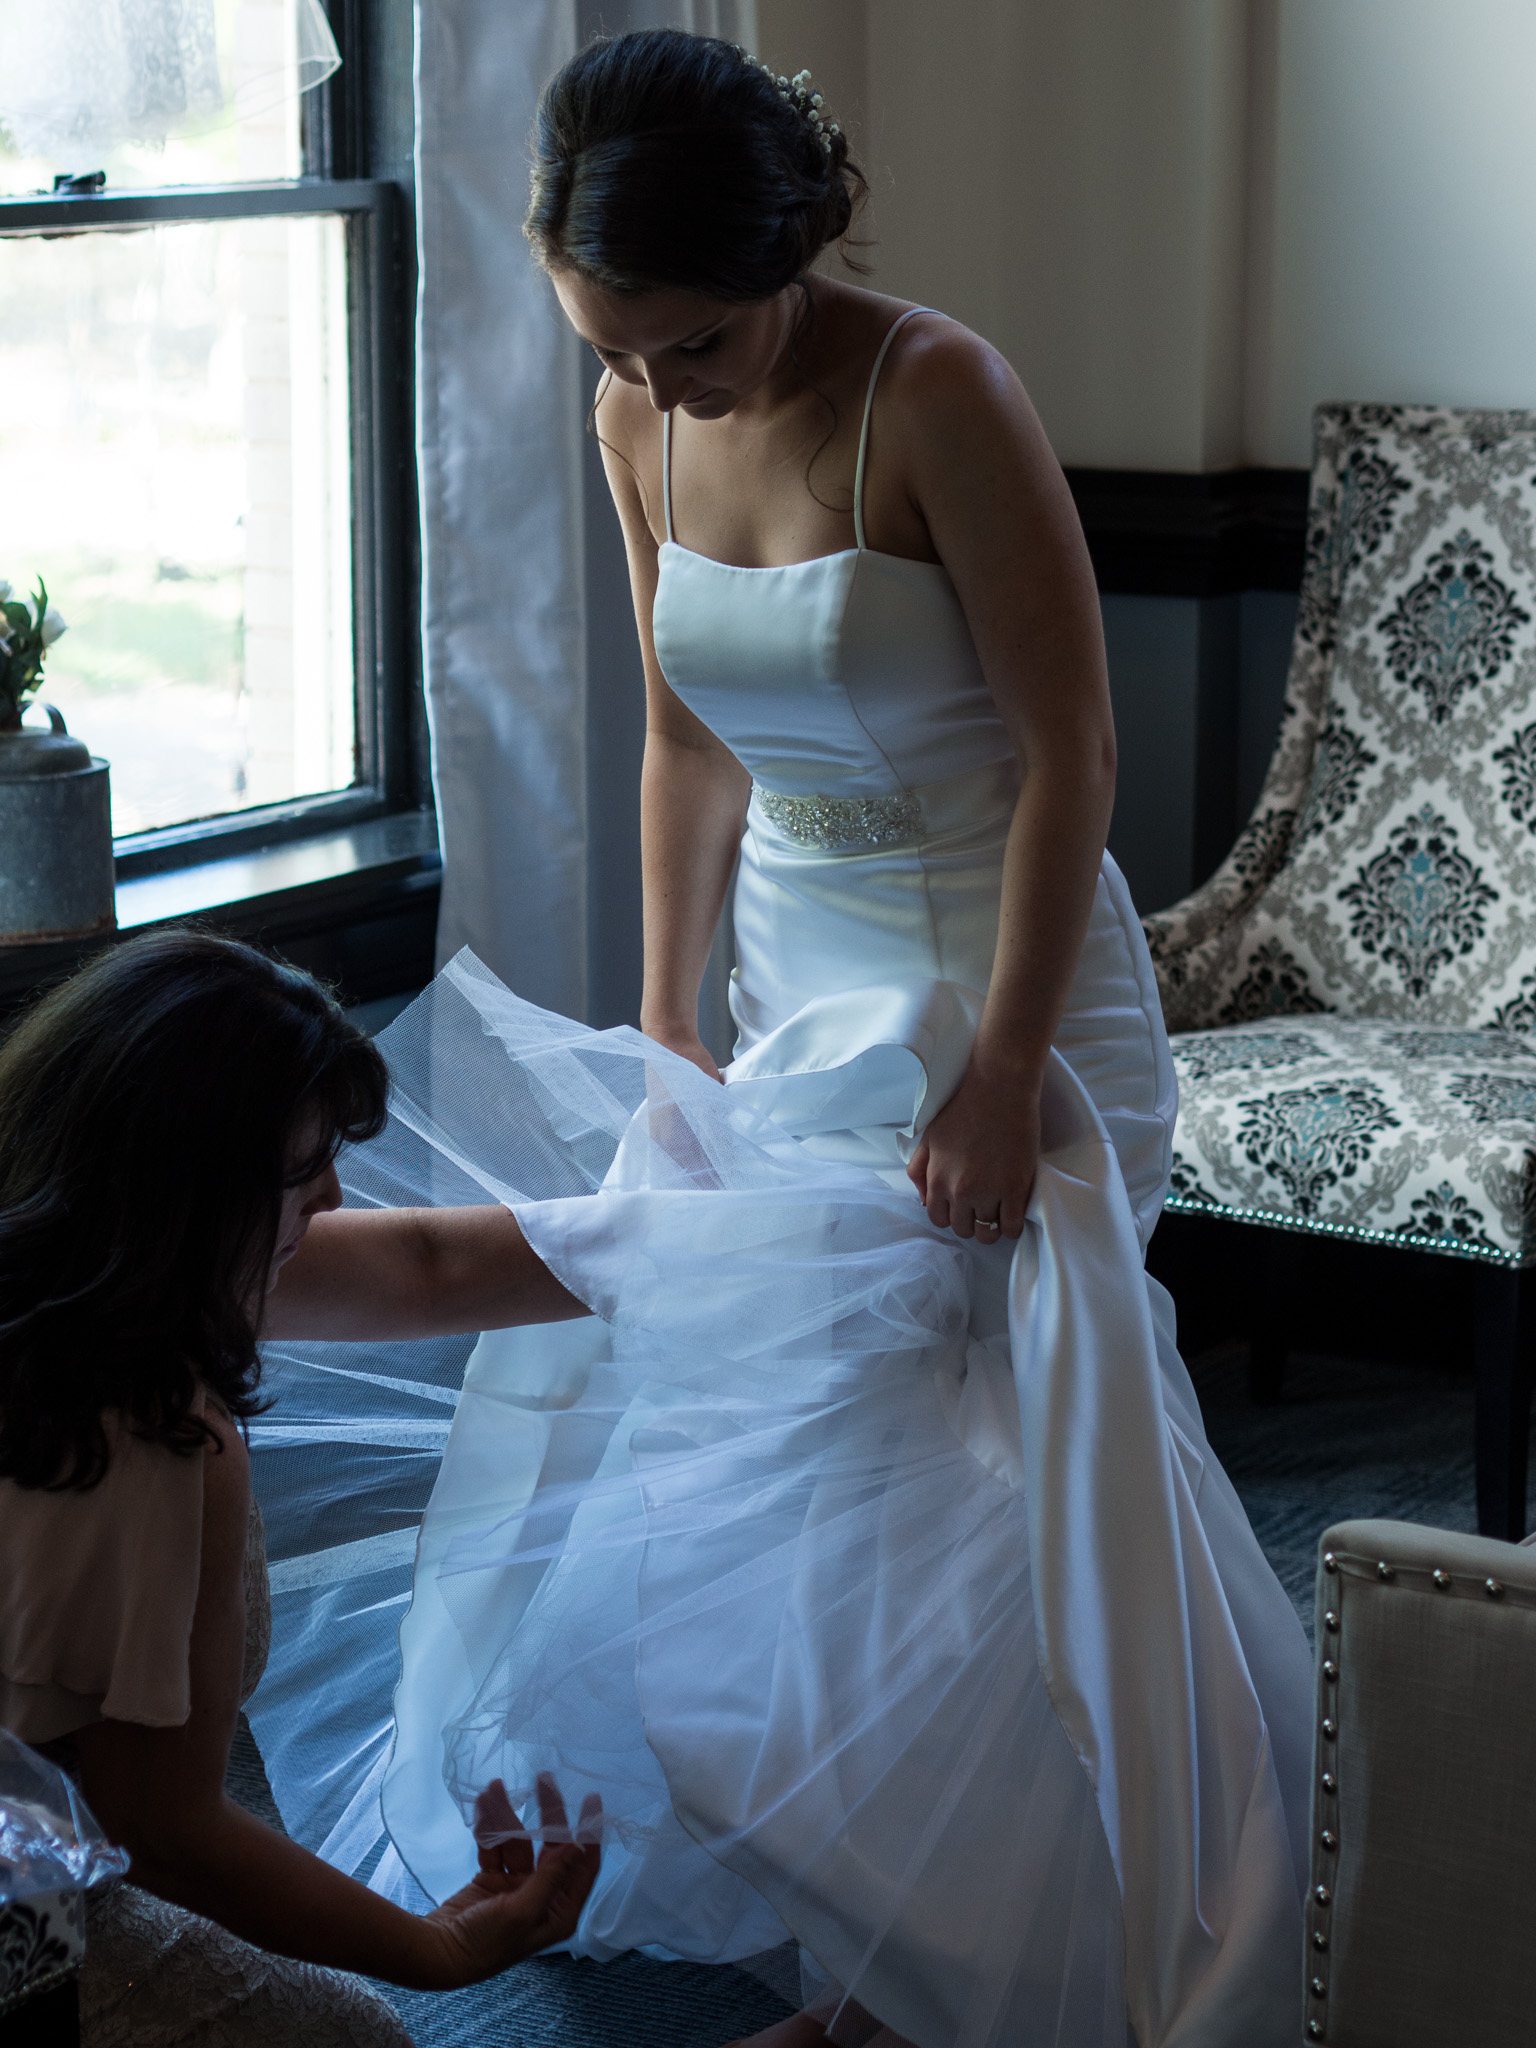 214 Martin Street, Wedding Photography, Wedding Dress, Getting Ready, Bride, Mother